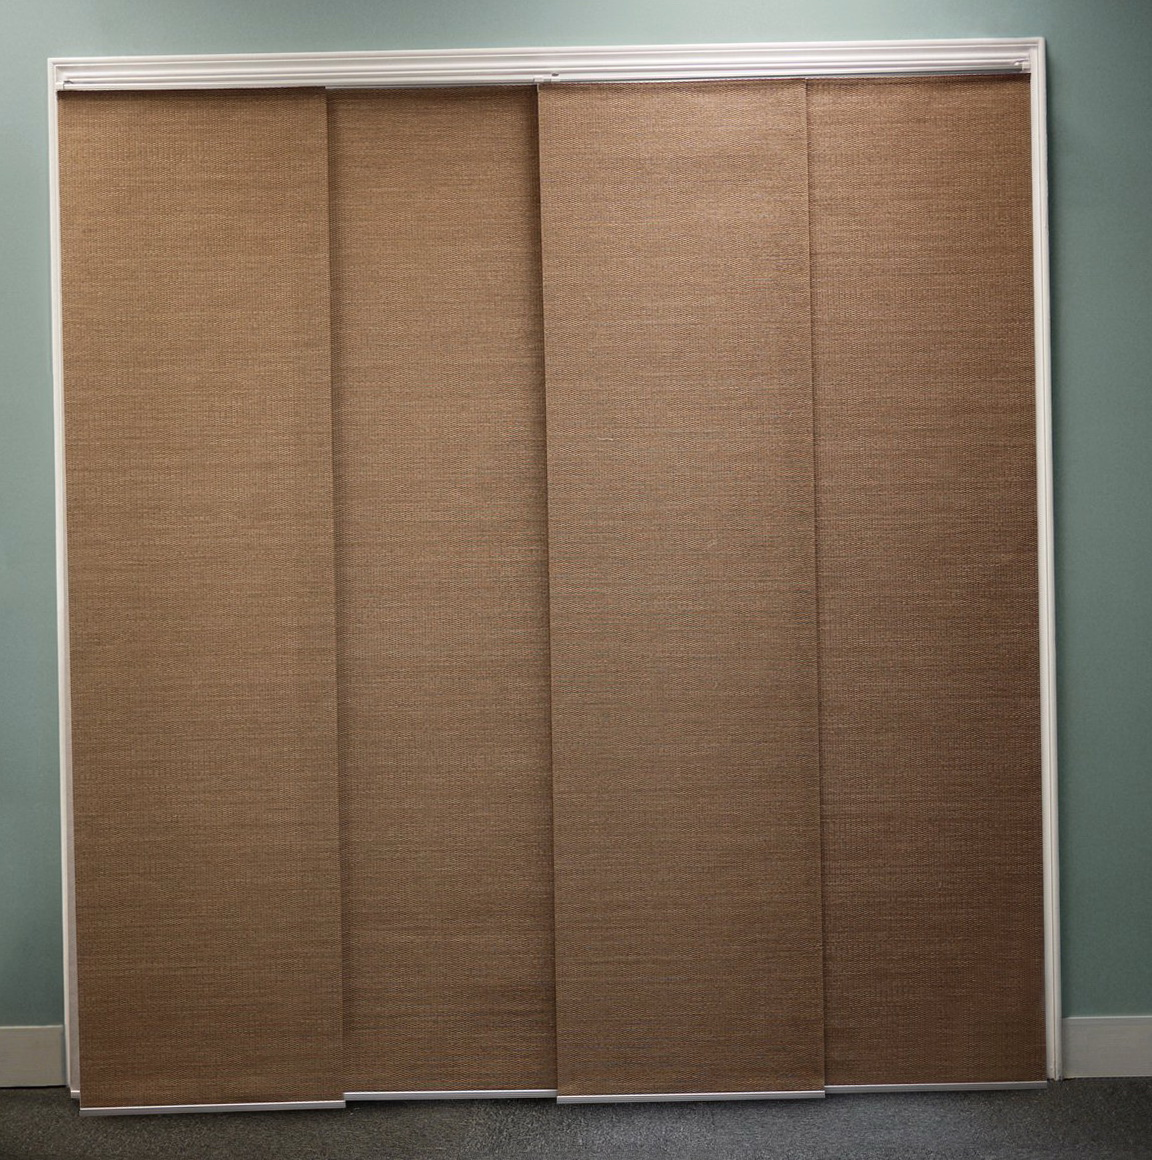 Curtains for sliding glass doors with vertical blinds for Sliding glass doors curtains